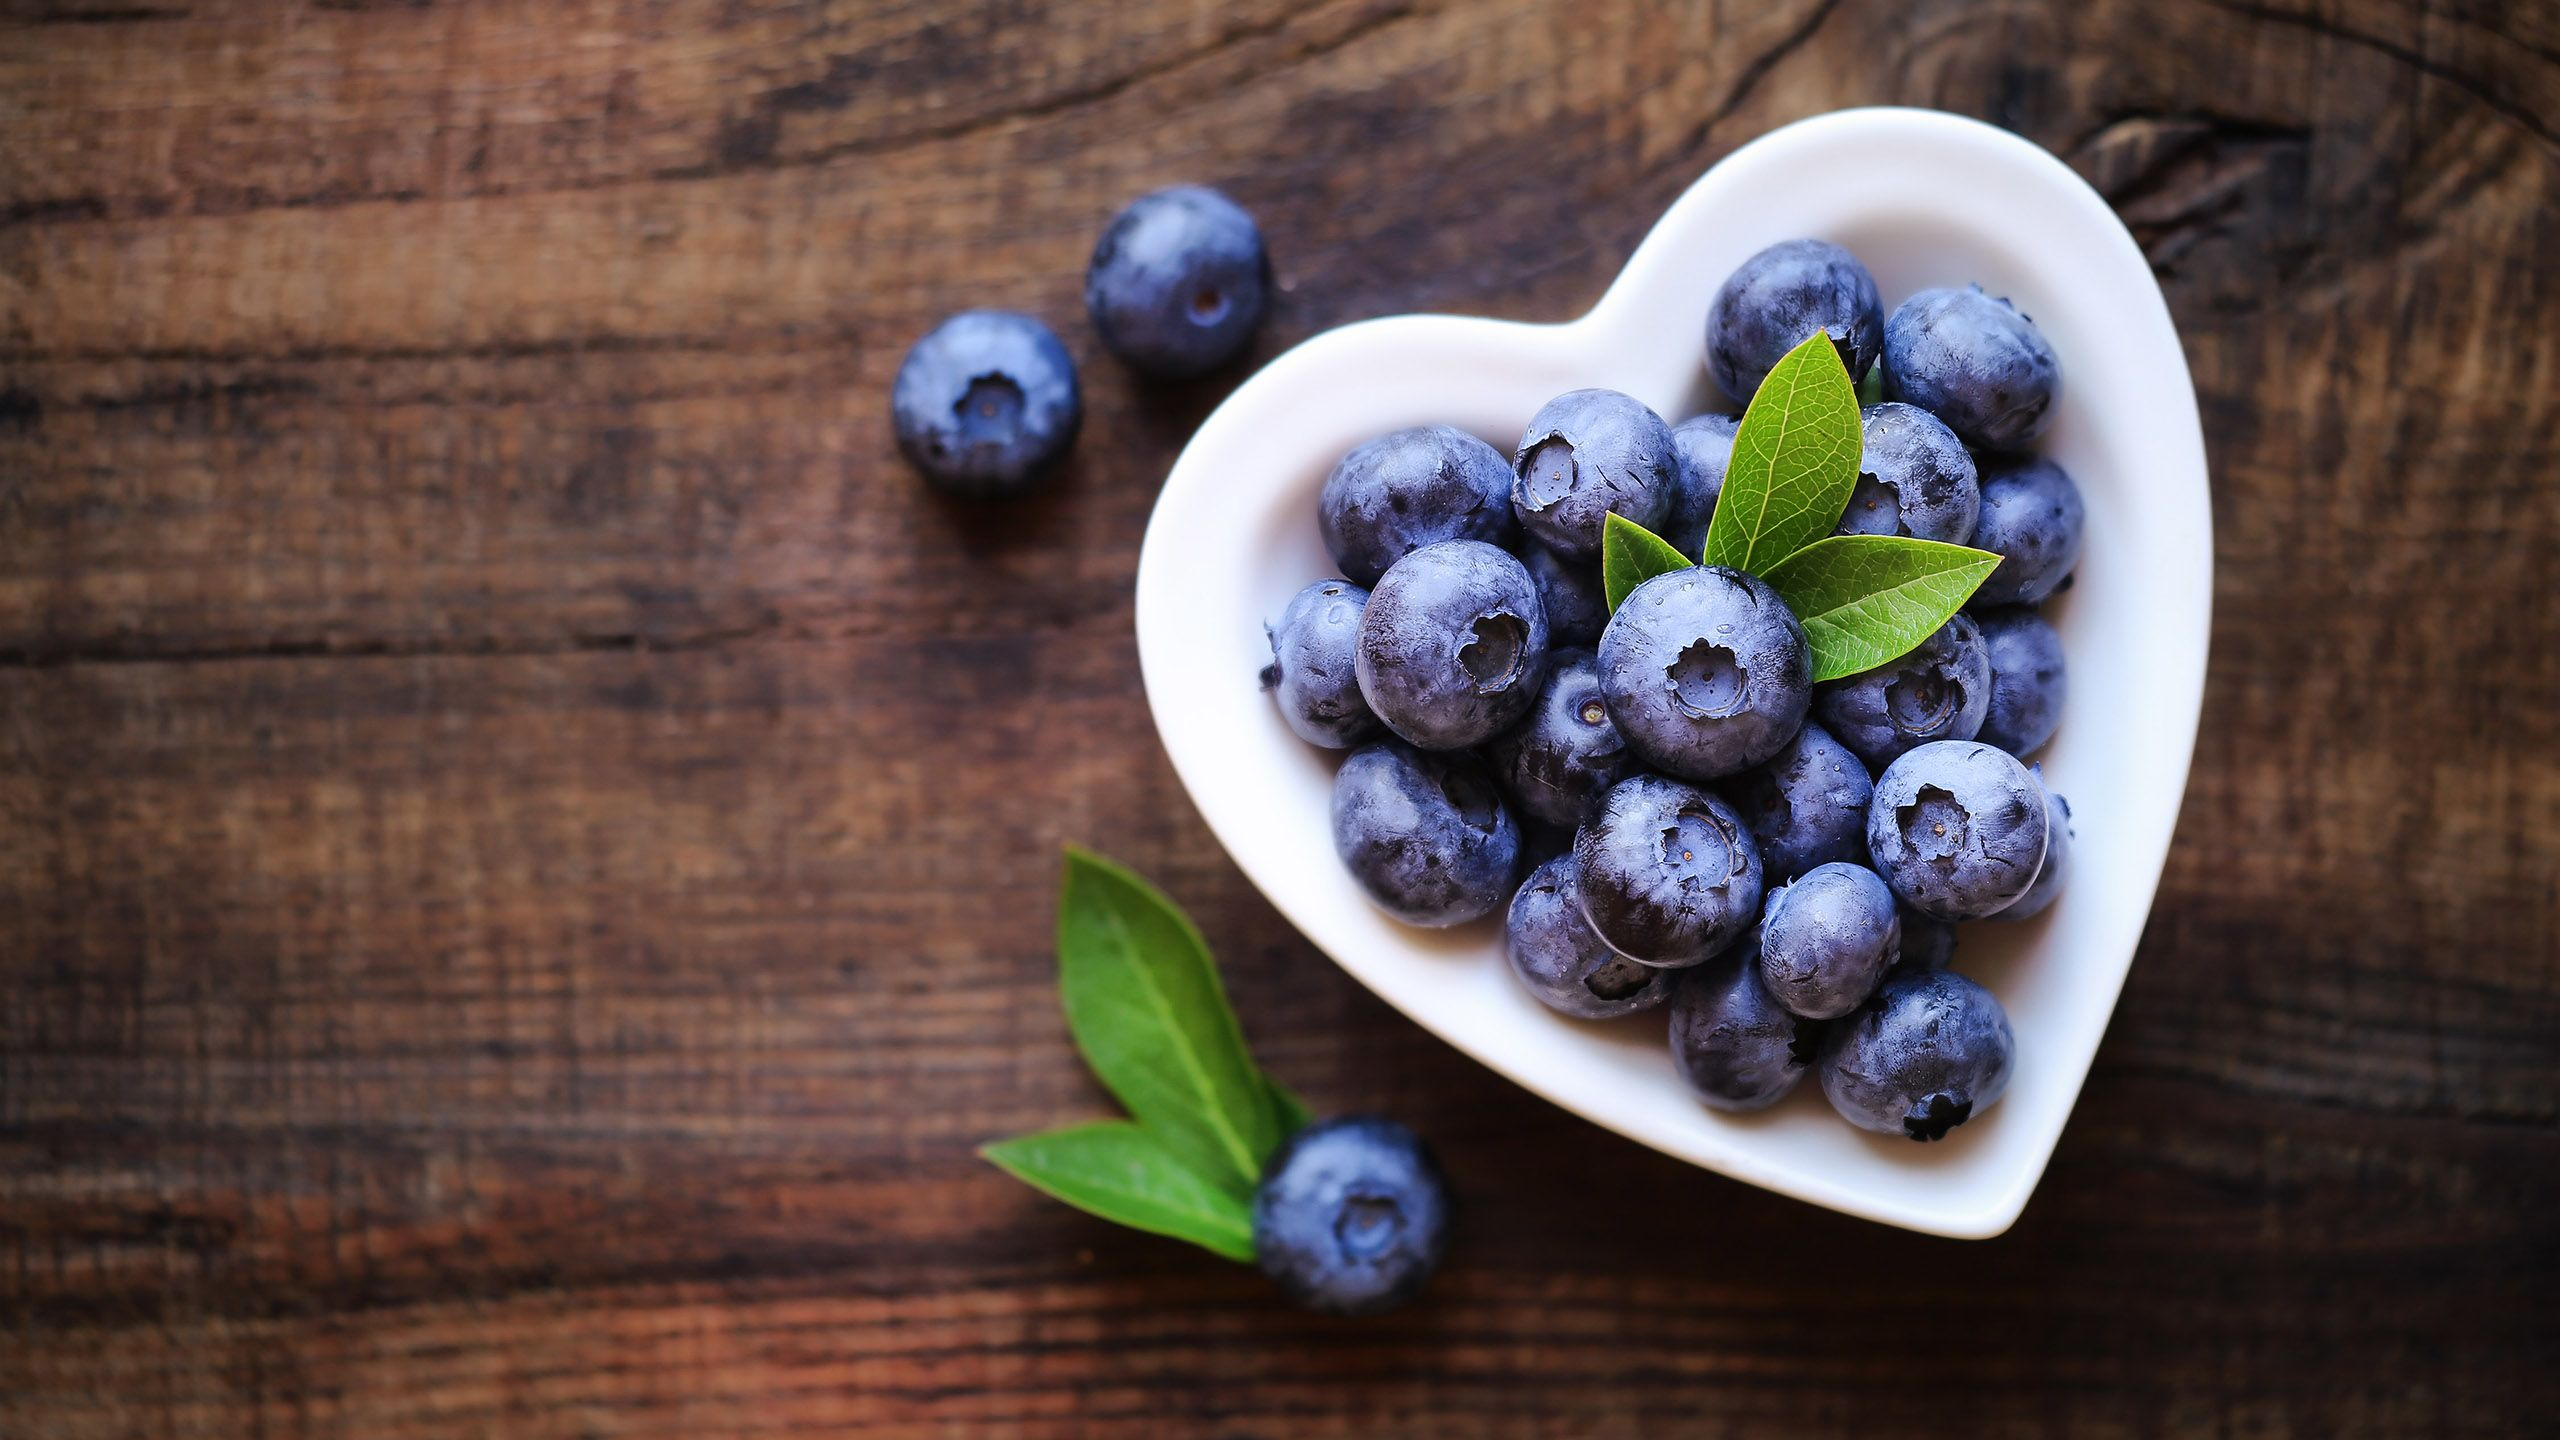 5 Top Foods for Your Heart – Plus One to Avoid